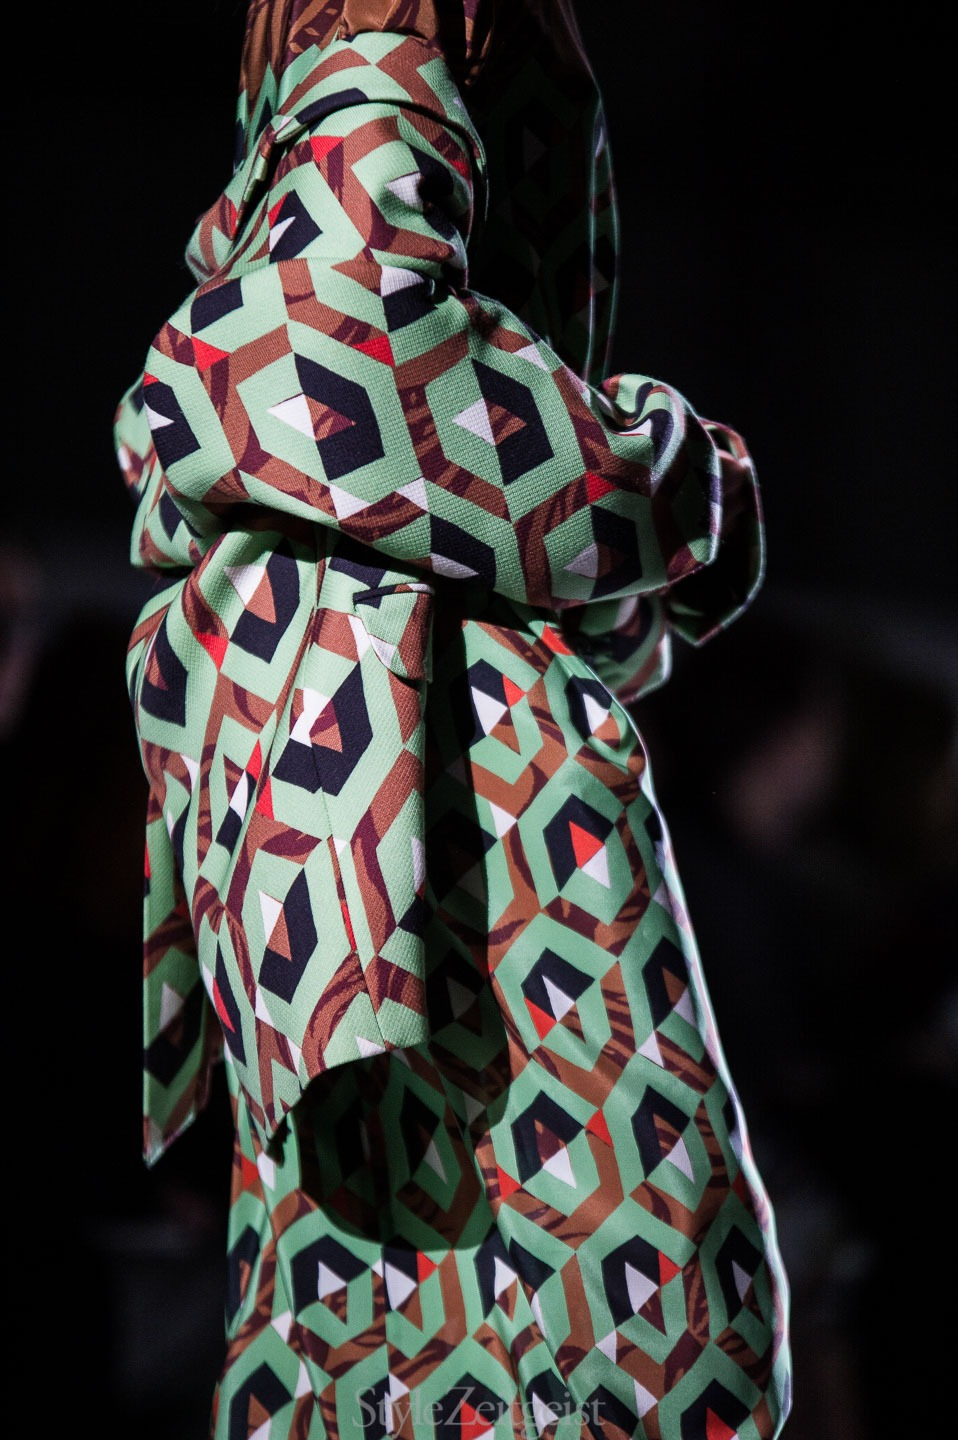 StyleZeitgeist Dries Van Noten F/W17 Women's - Paris Fashion    StyleZeitgeist Dries Van Noten F/W17 Women's - Paris Fashion    StyleZeitgeist Dries Van Noten F/W17 Women's - Paris Fashion    StyleZeitgeist Dries Van Noten F/W17 Women's - Paris Fashion    StyleZeitgeist Dries Van Noten F/W17 Women's - Paris Fashion    StyleZeitgeist Dries Van Noten F/W17 Women's - Paris Fashion